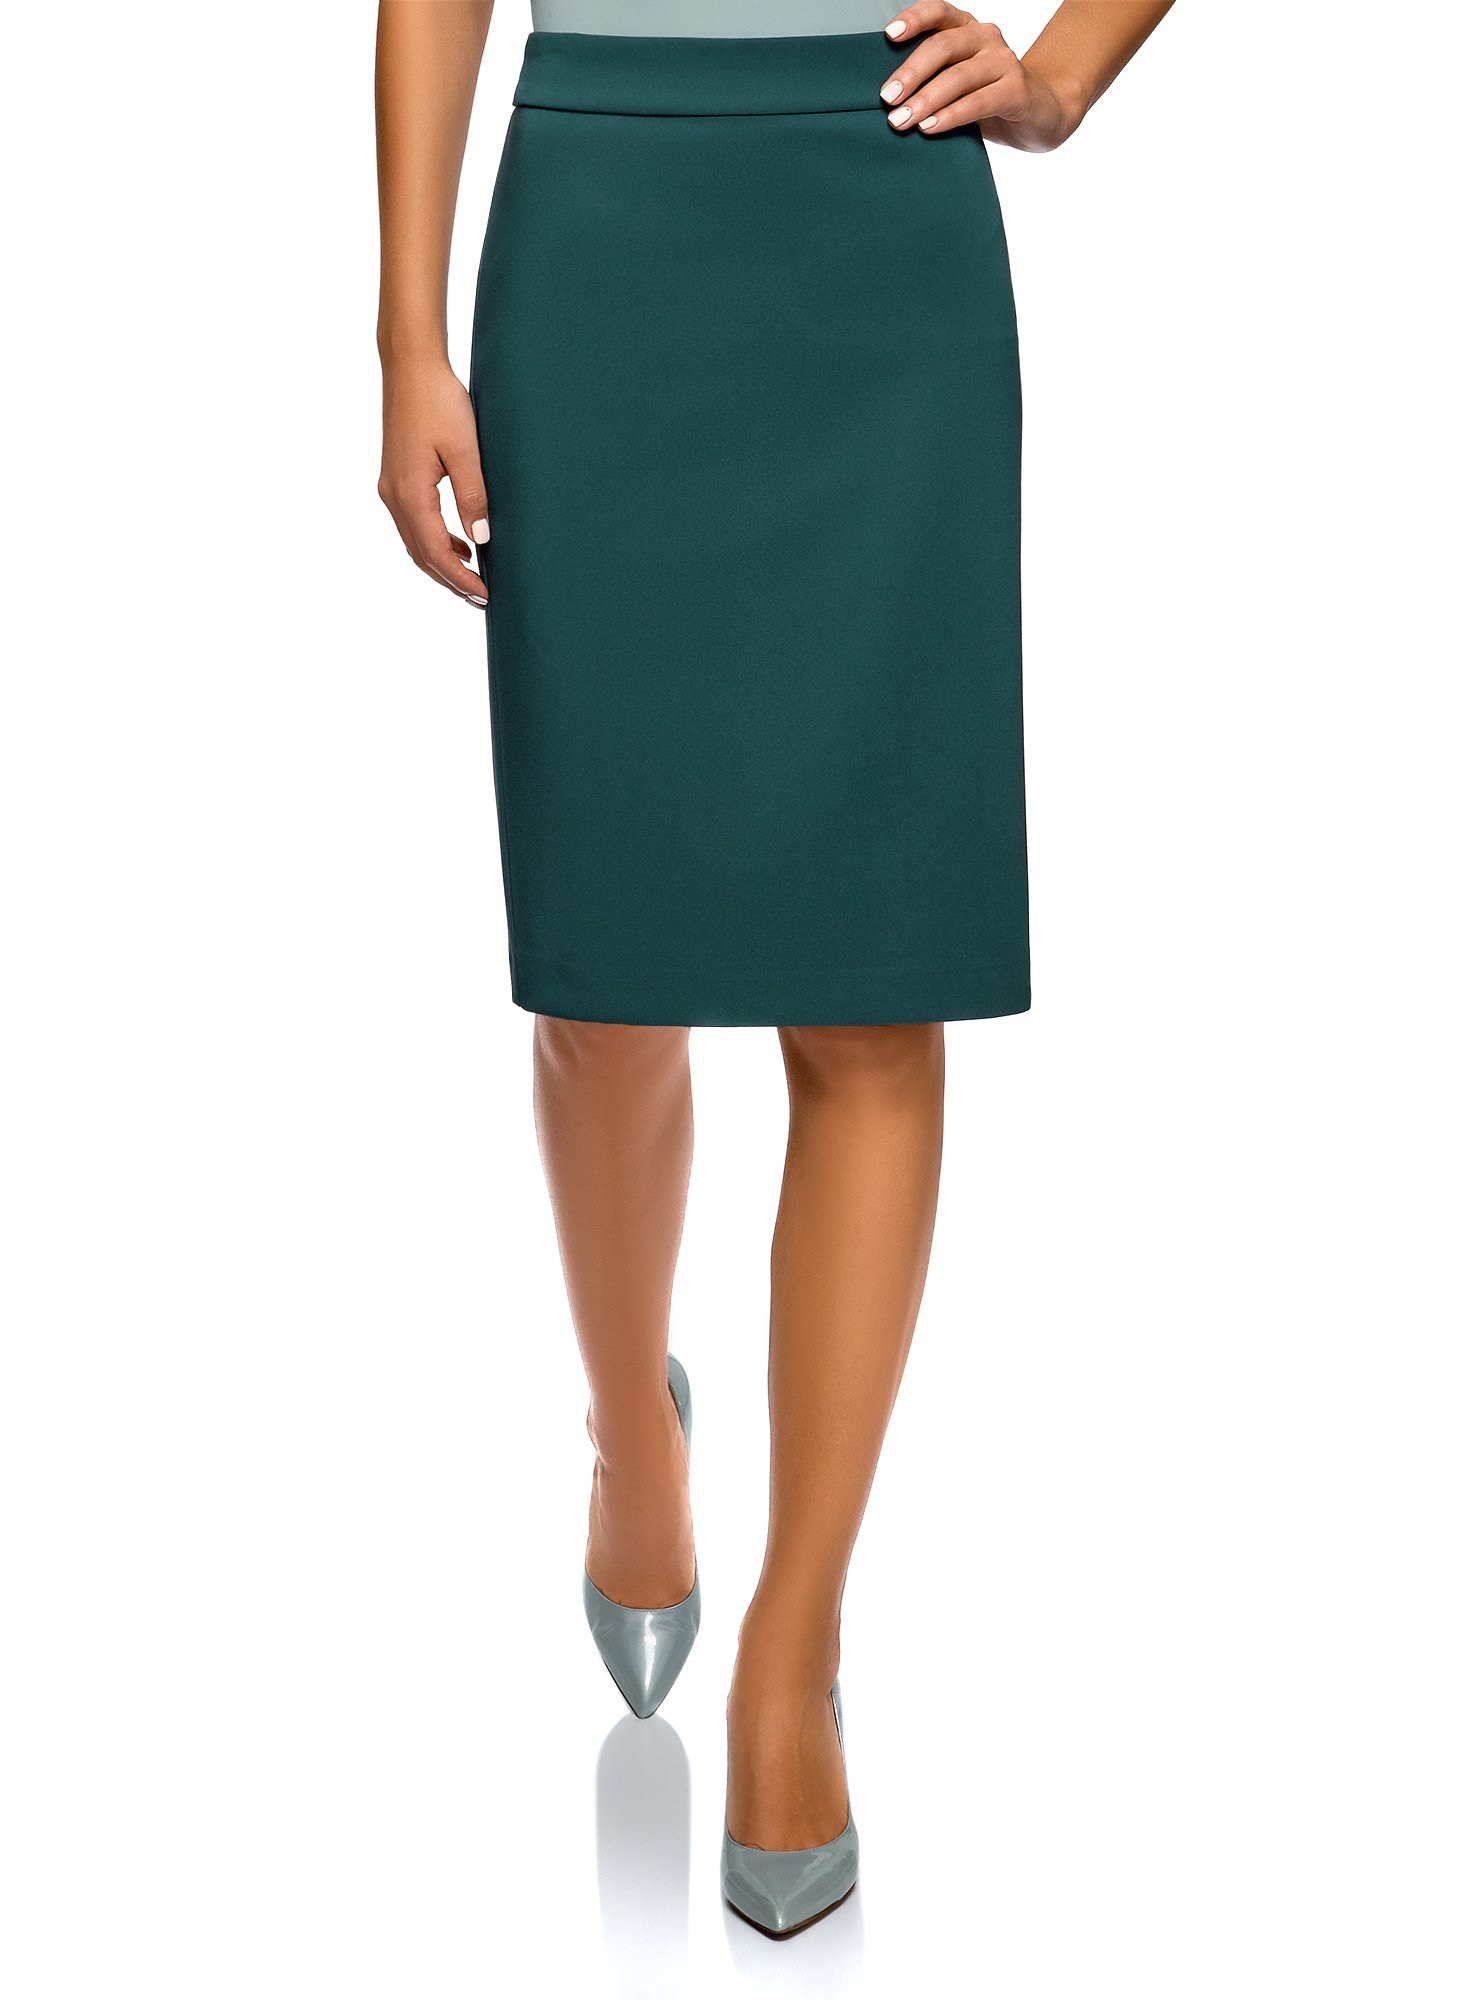 oodji Collection Women's Basic Pencil Skirt, Green, 8 by oodji